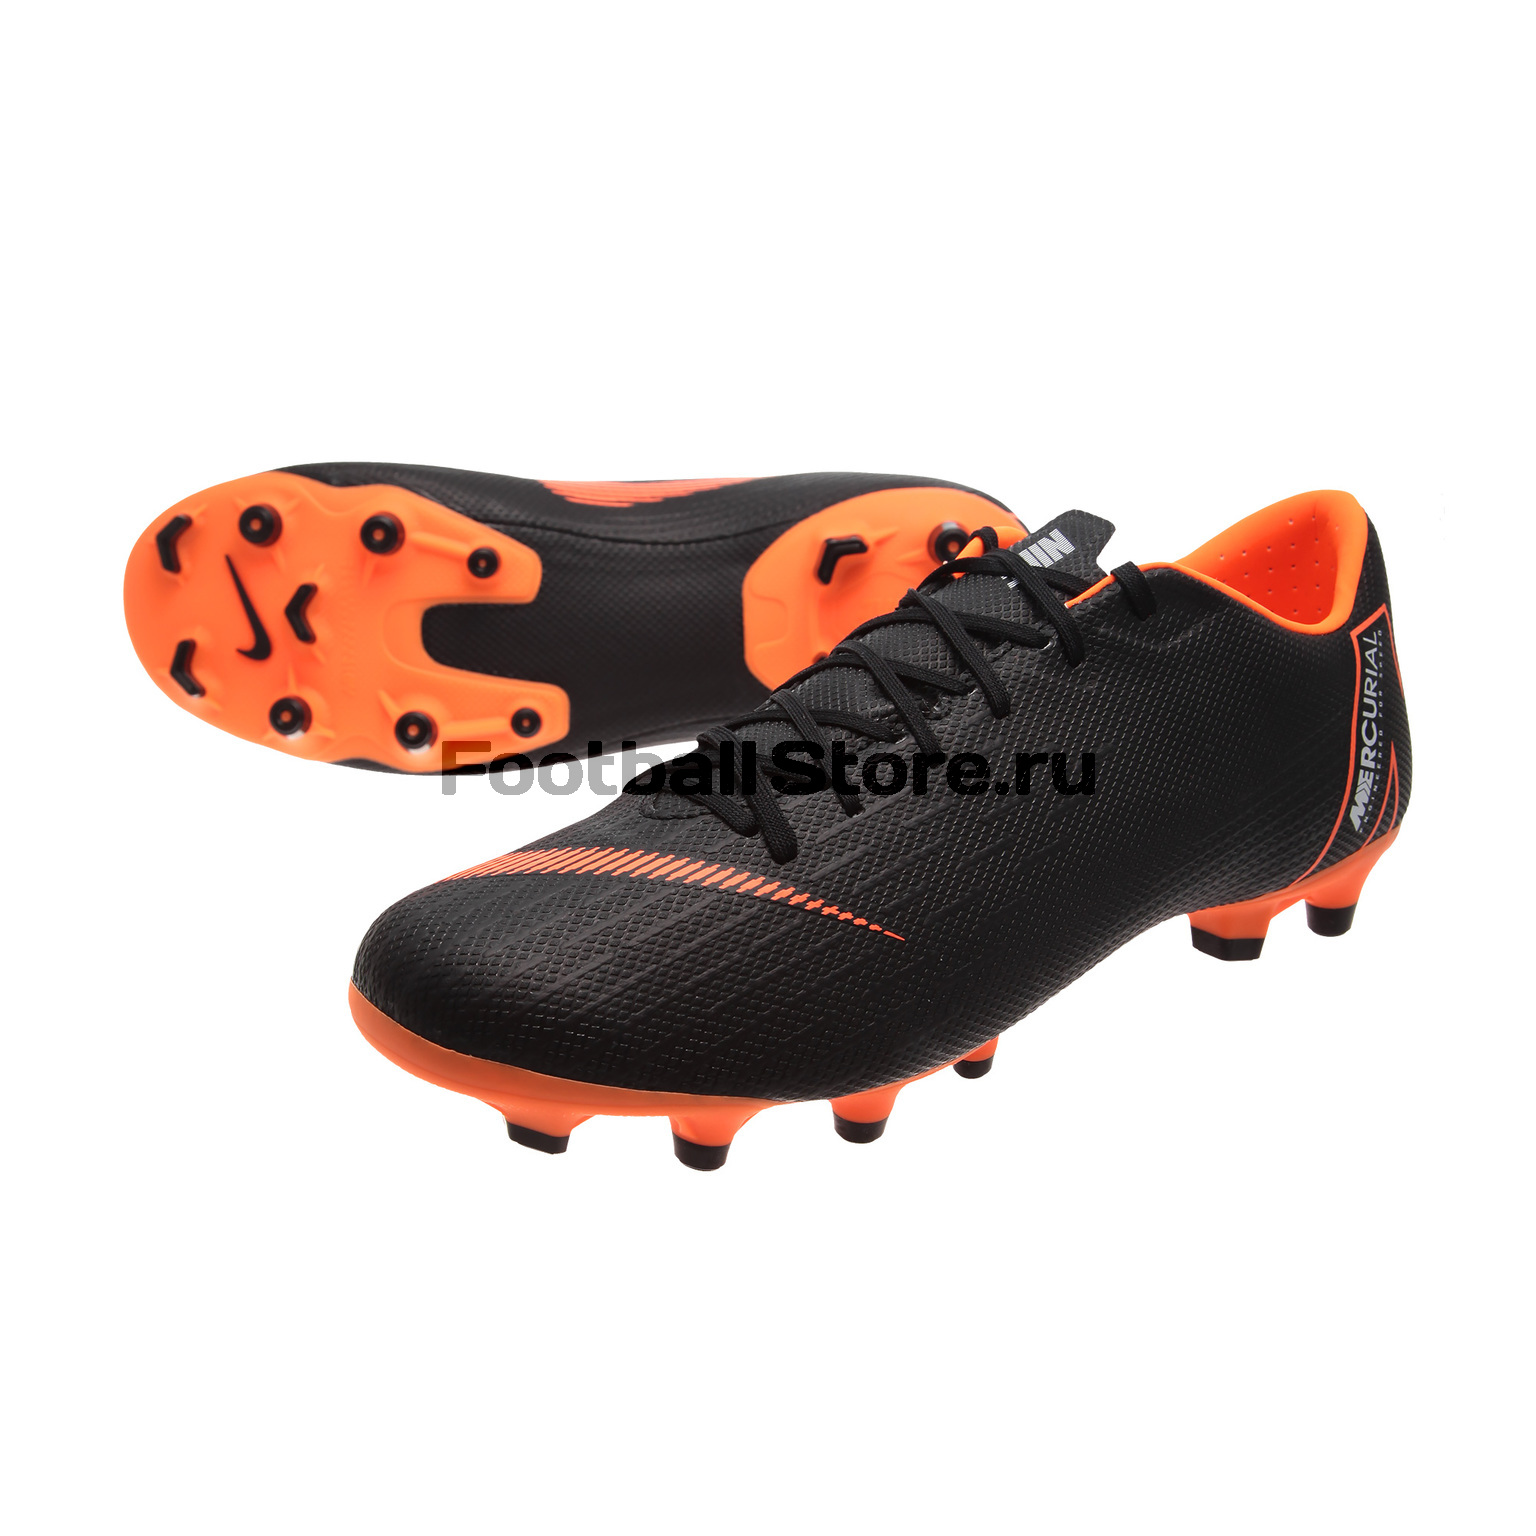 Бутсы Nike Vapor 12 Academy FG/MG AH7375-081 бутсы nike superfly academy gs cr7 jr fg mg aj3111 390